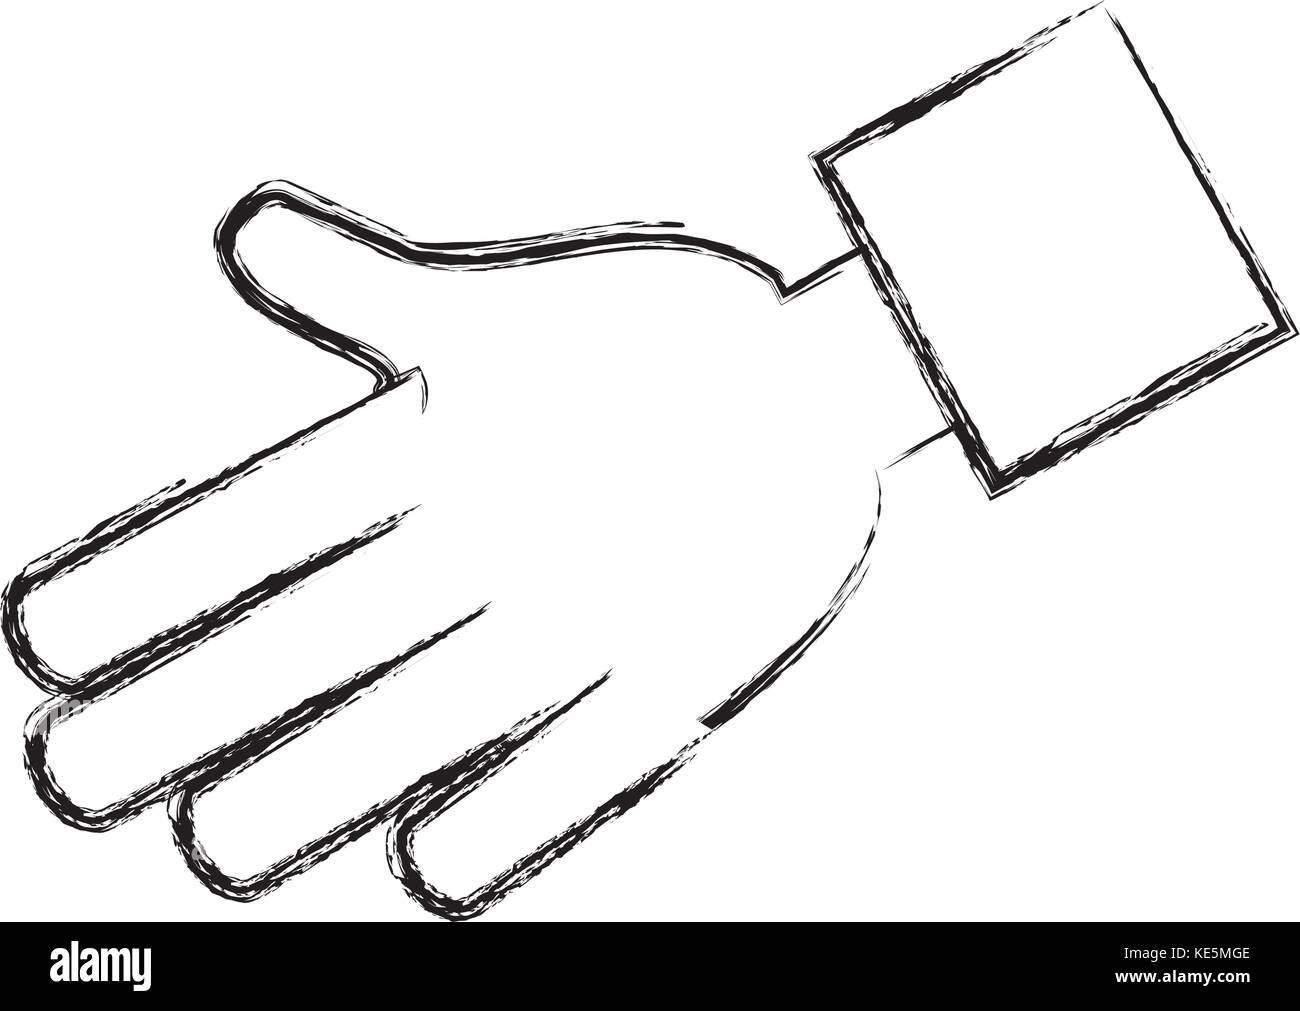 human hands design  - Stock Image